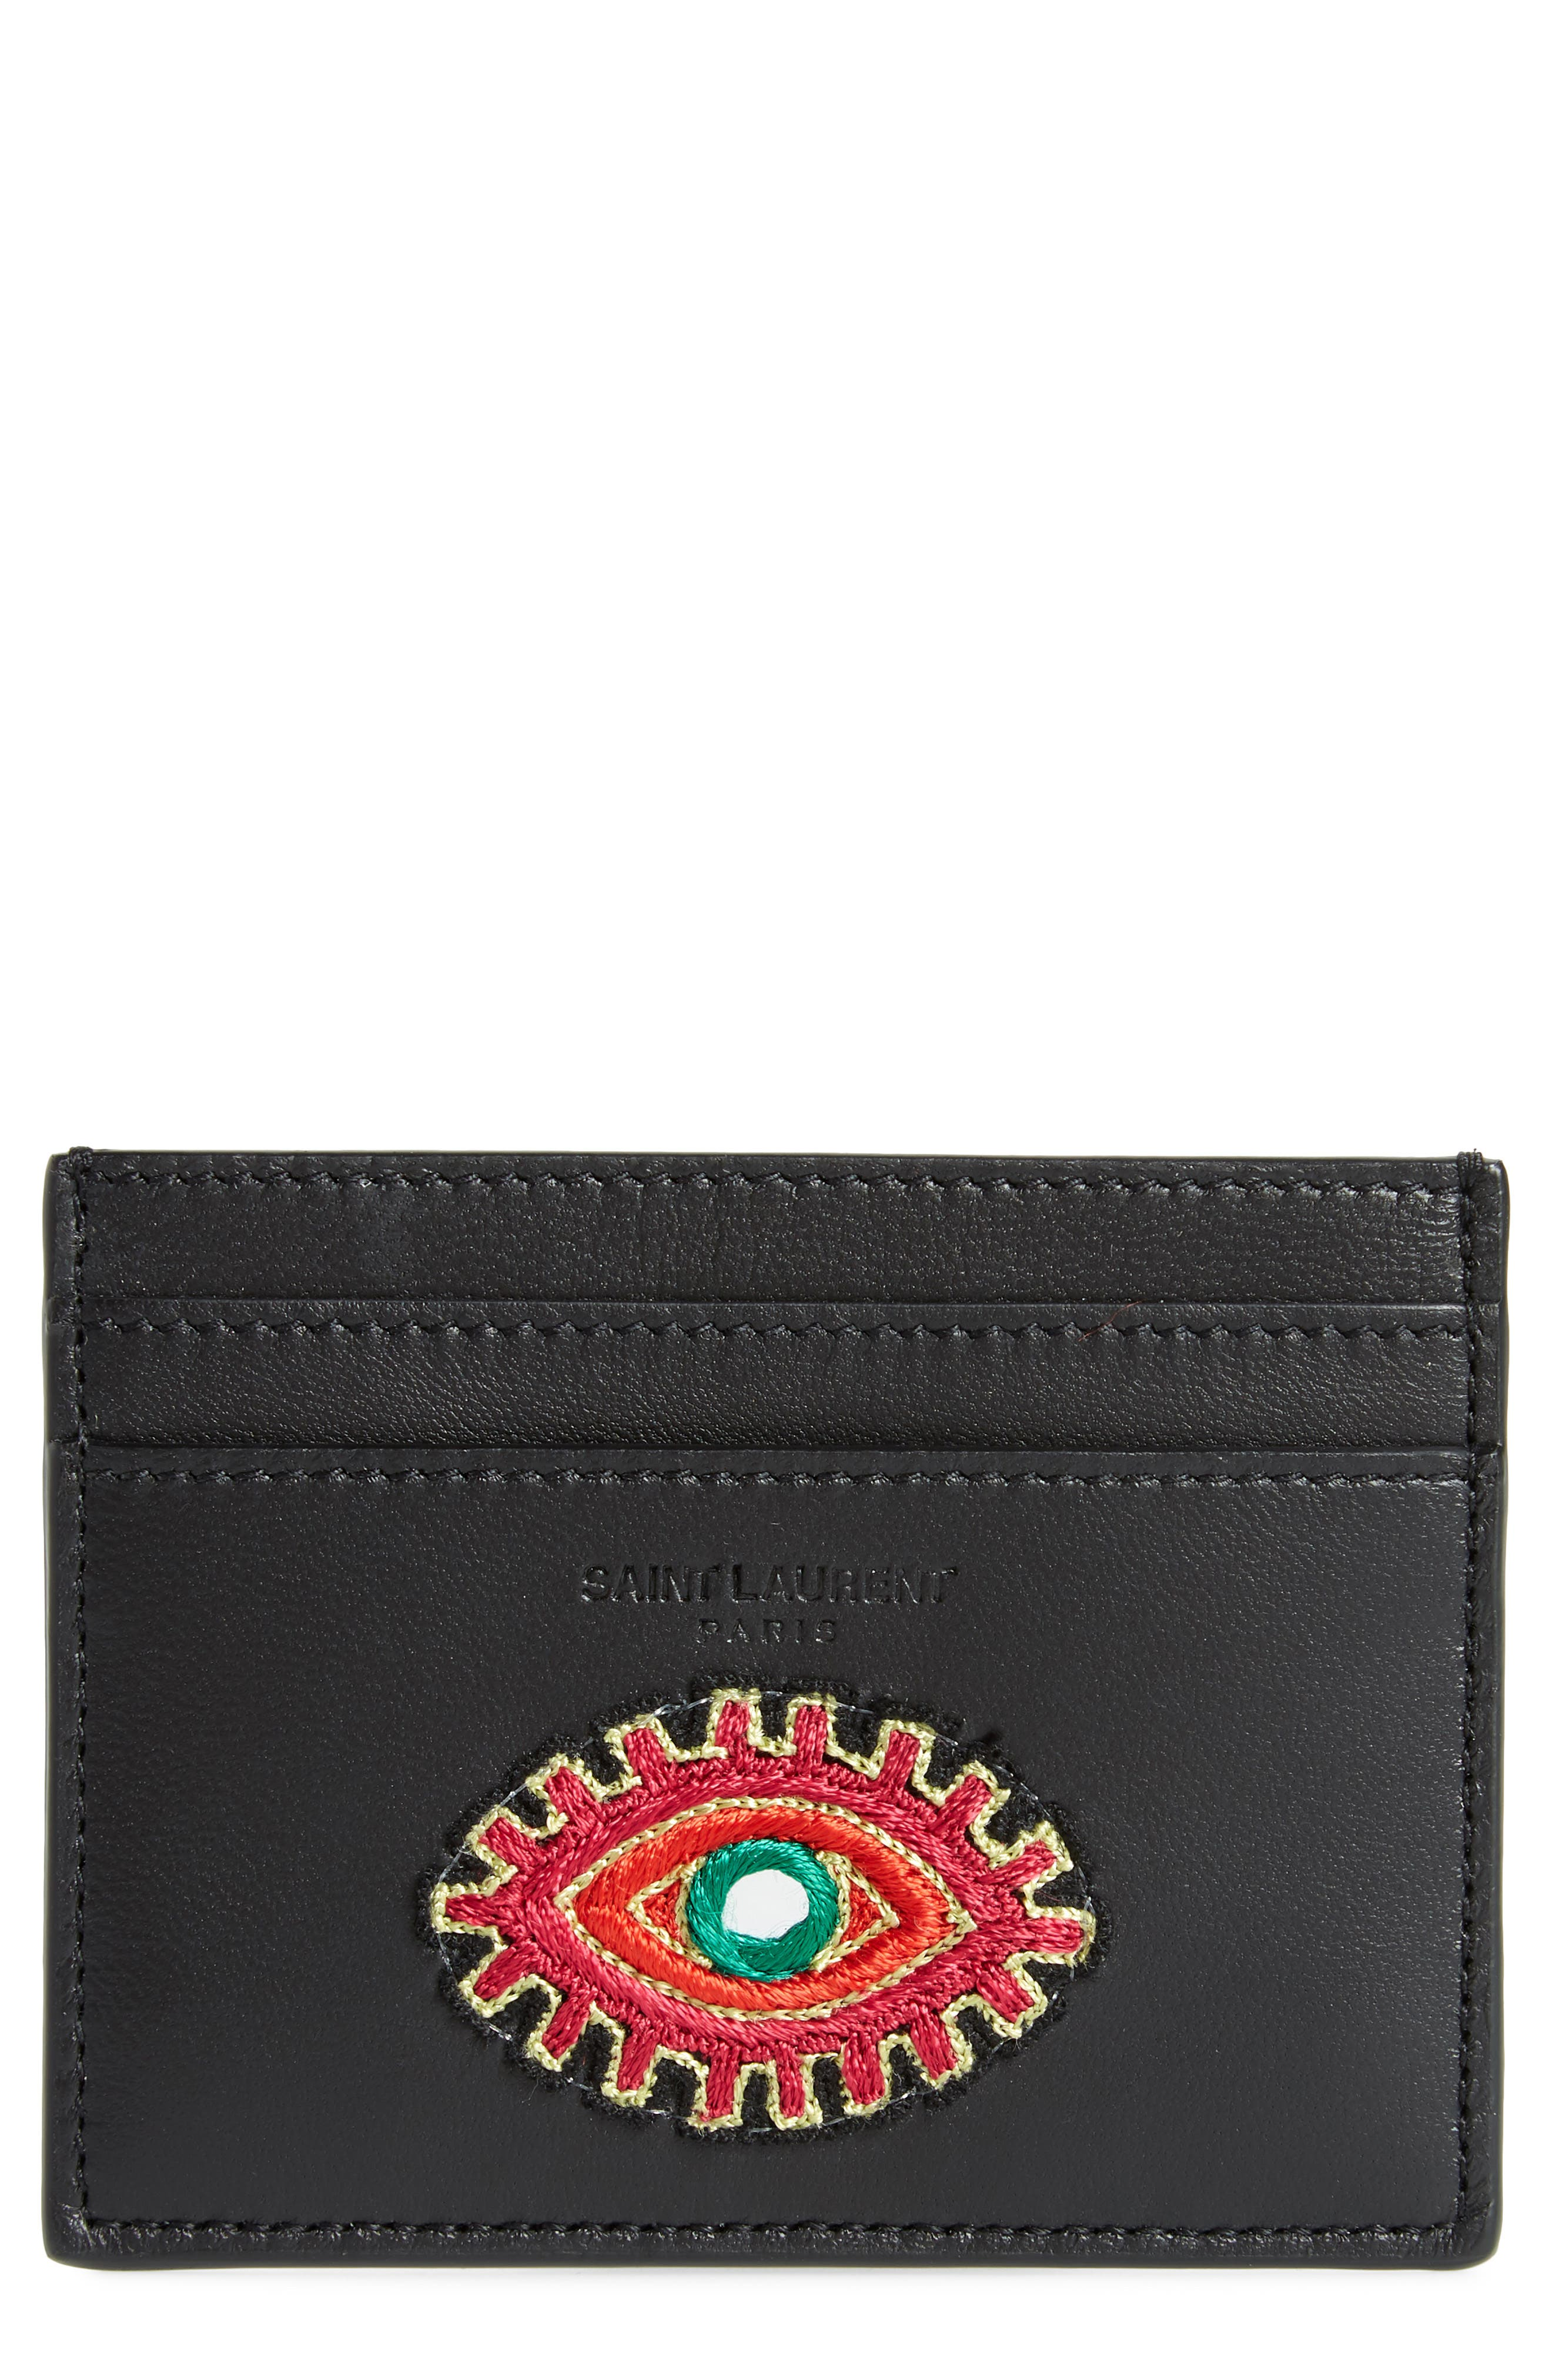 Saint Laurent Embroidered Patch Leather Card Case